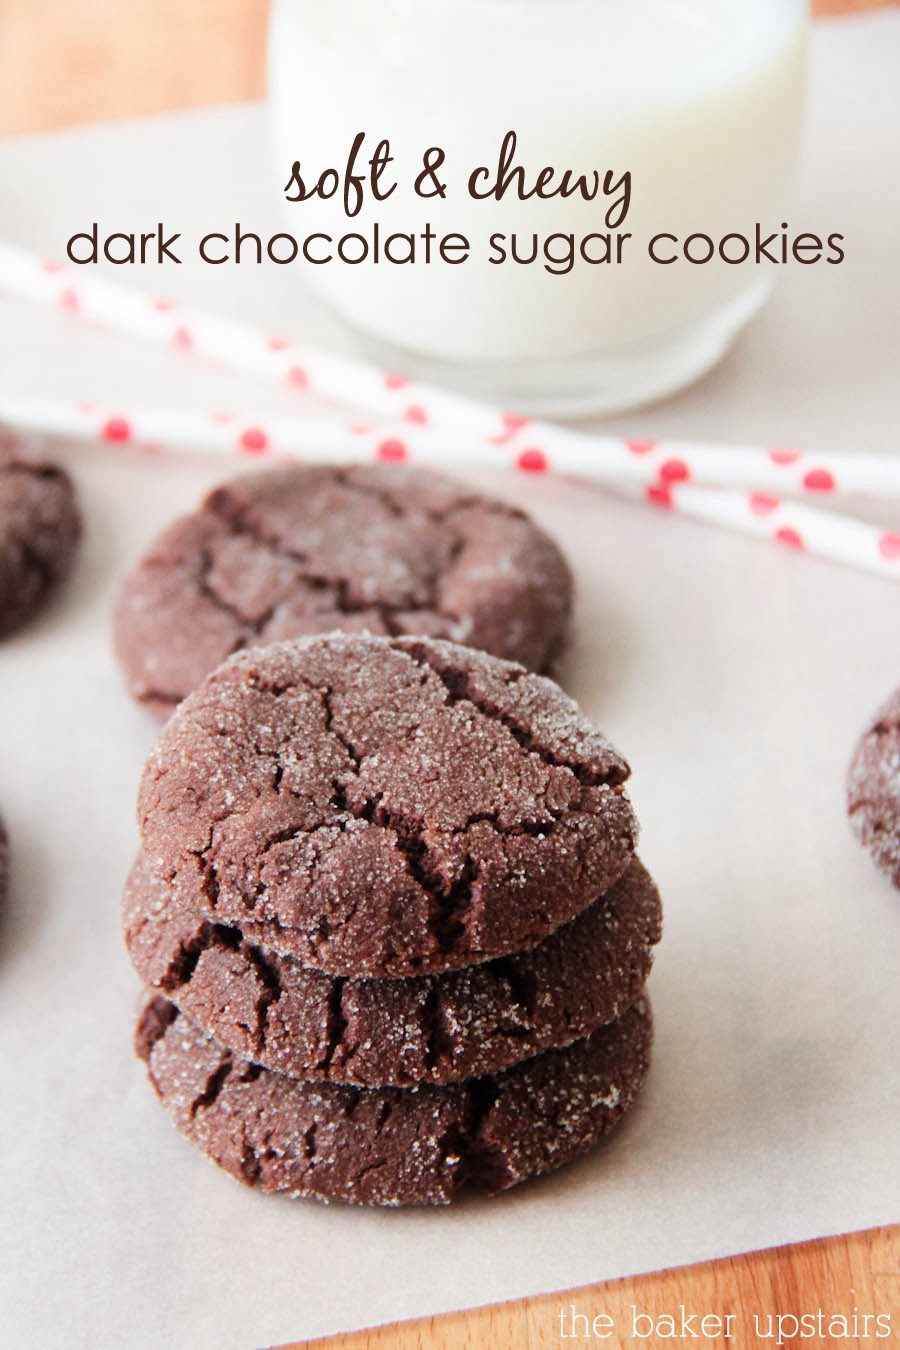 These soft and chewy dark chocolate sugar cookies are so rich and full of chocolate flavor!